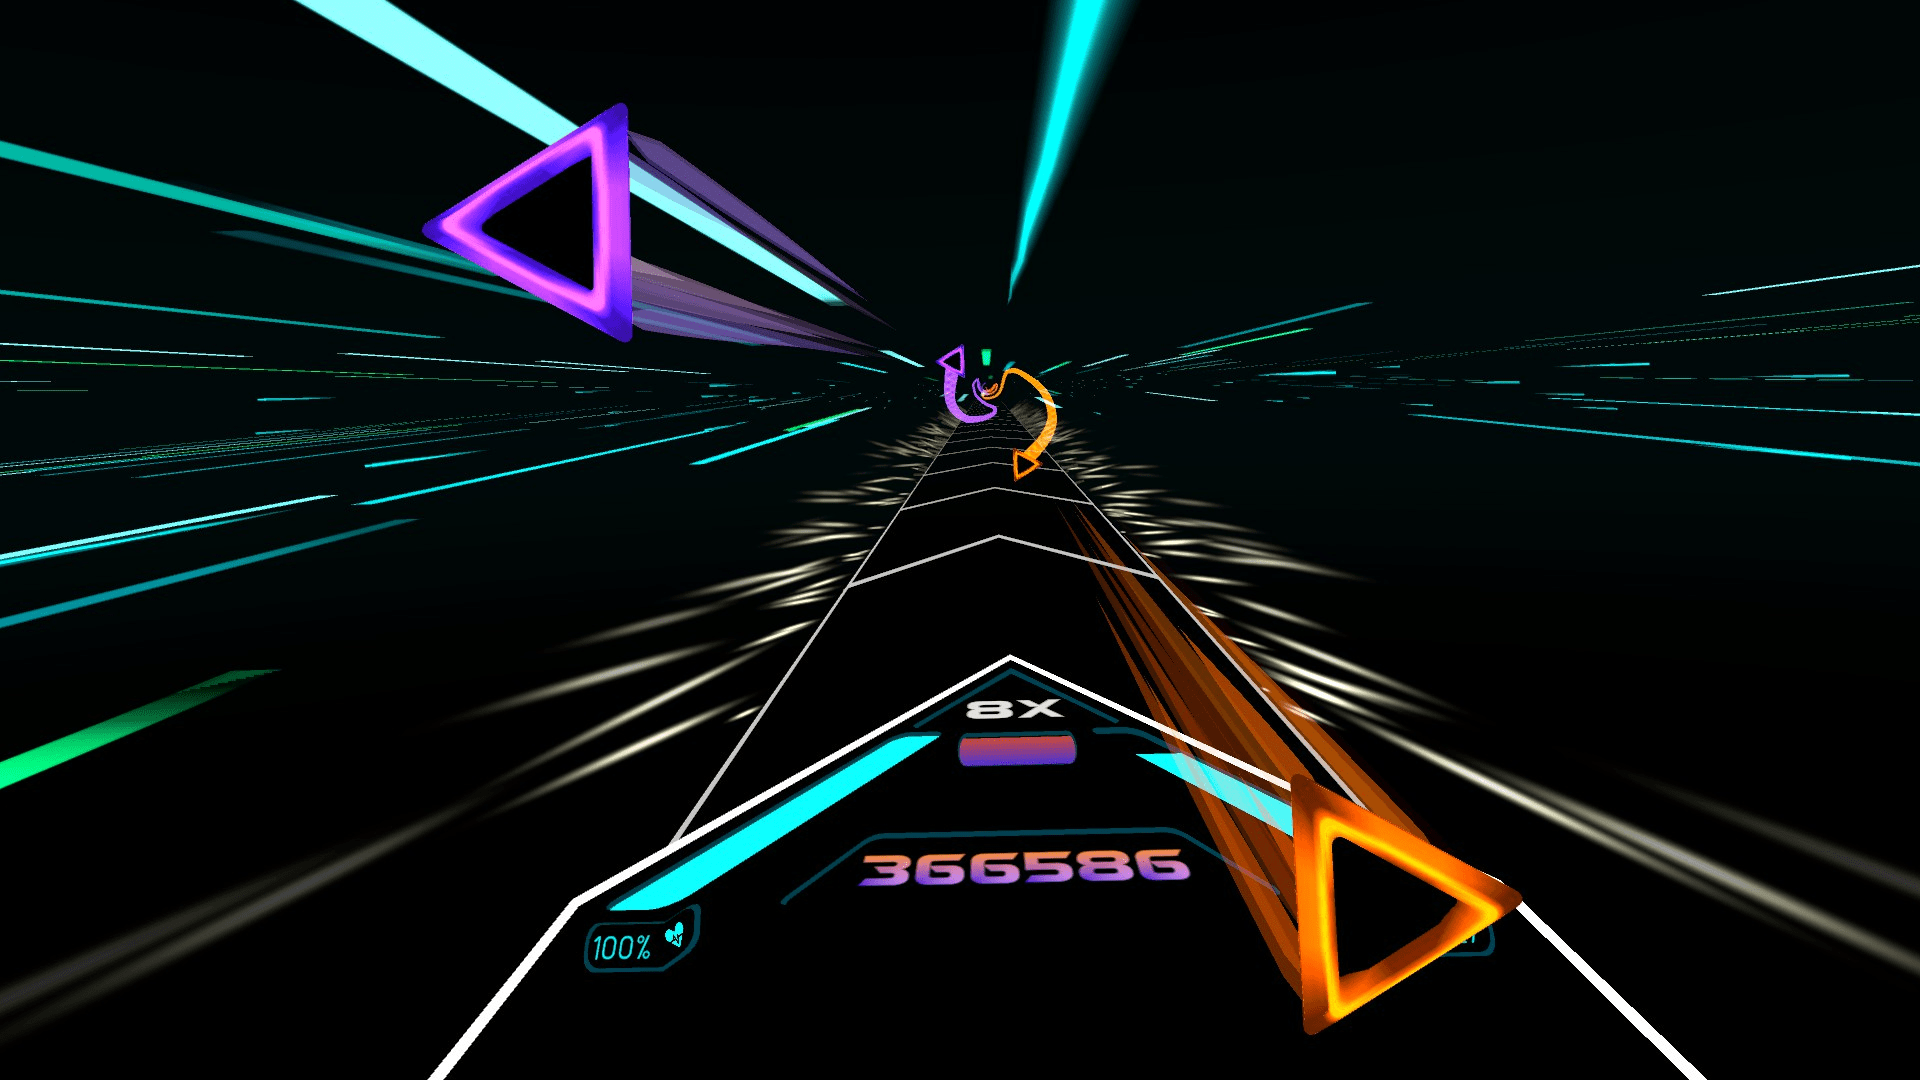 A screenshot from the Audio Trip game on Oculus Quest 2